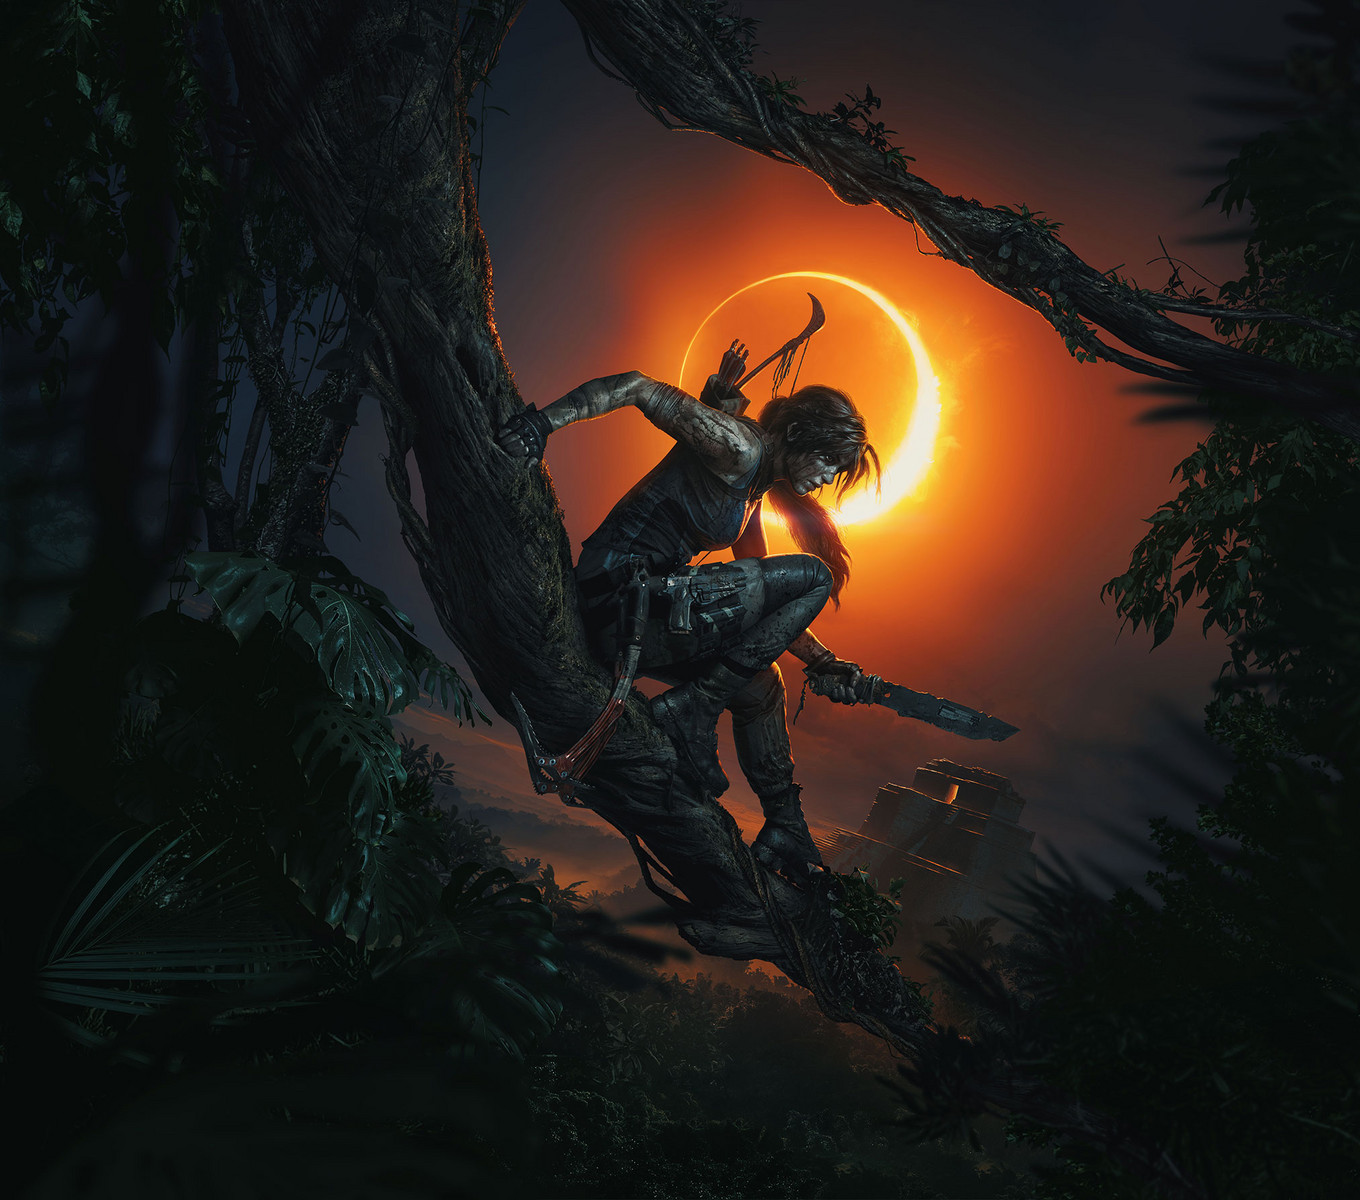 Shadow of The Tomb Raider trailer: What is Lara Croft Becoming?